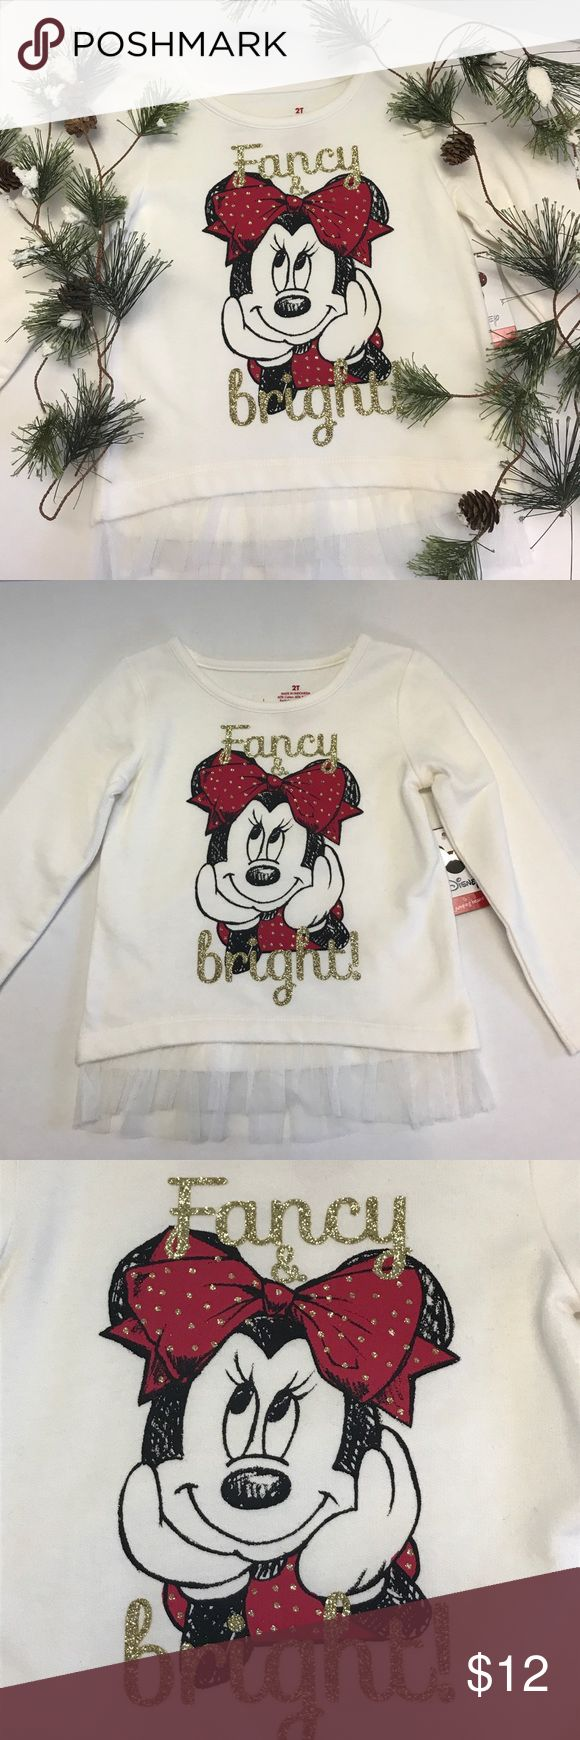 "Minnie Mouse Fancy & Bright Sweatshirt This cute little sweatshirt features Minnie Mouse daydreaming of the Christmas season.  She is dressed in red with glitter gold polkadots.  The sweatshirt also has the words "" Fancy & Bright"" in gold glitter around Minnie.  There is a little ivory tulle added to the hem of the sweatshirt for a little added touch!!  Sweatshirt is a soft cotton poly blend (60%/40%).  Super cute & a great Black Friday weekend deal!!  NWT Disney Shirts & Tops Sweatshirts…"